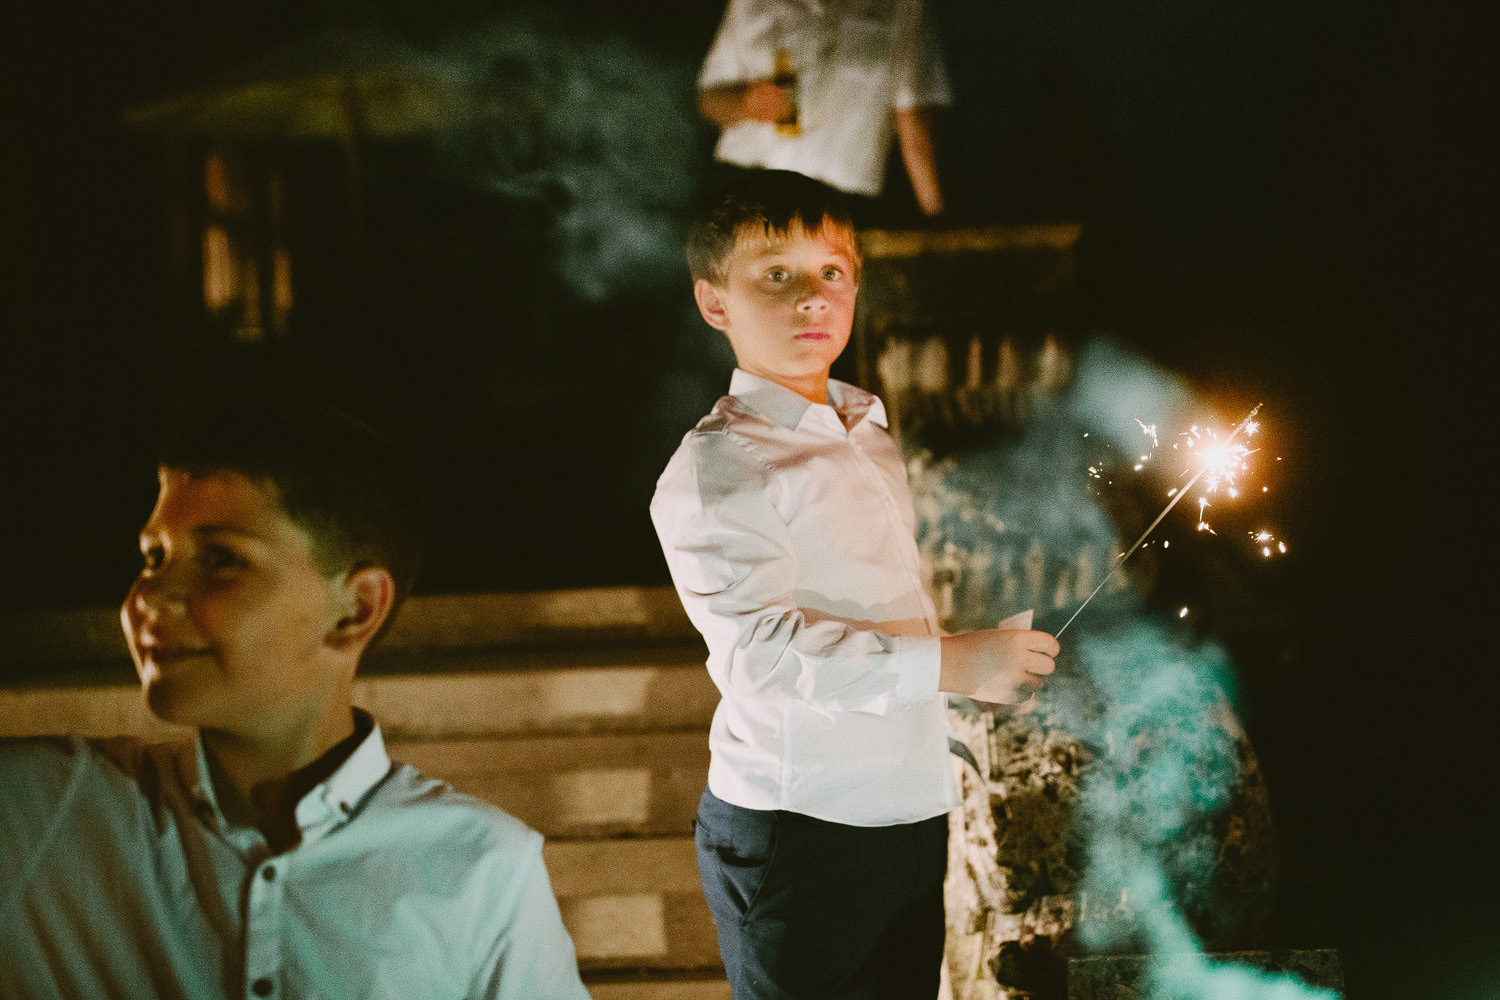 Boy in white shirt holds a sparkler at a wedding in the night